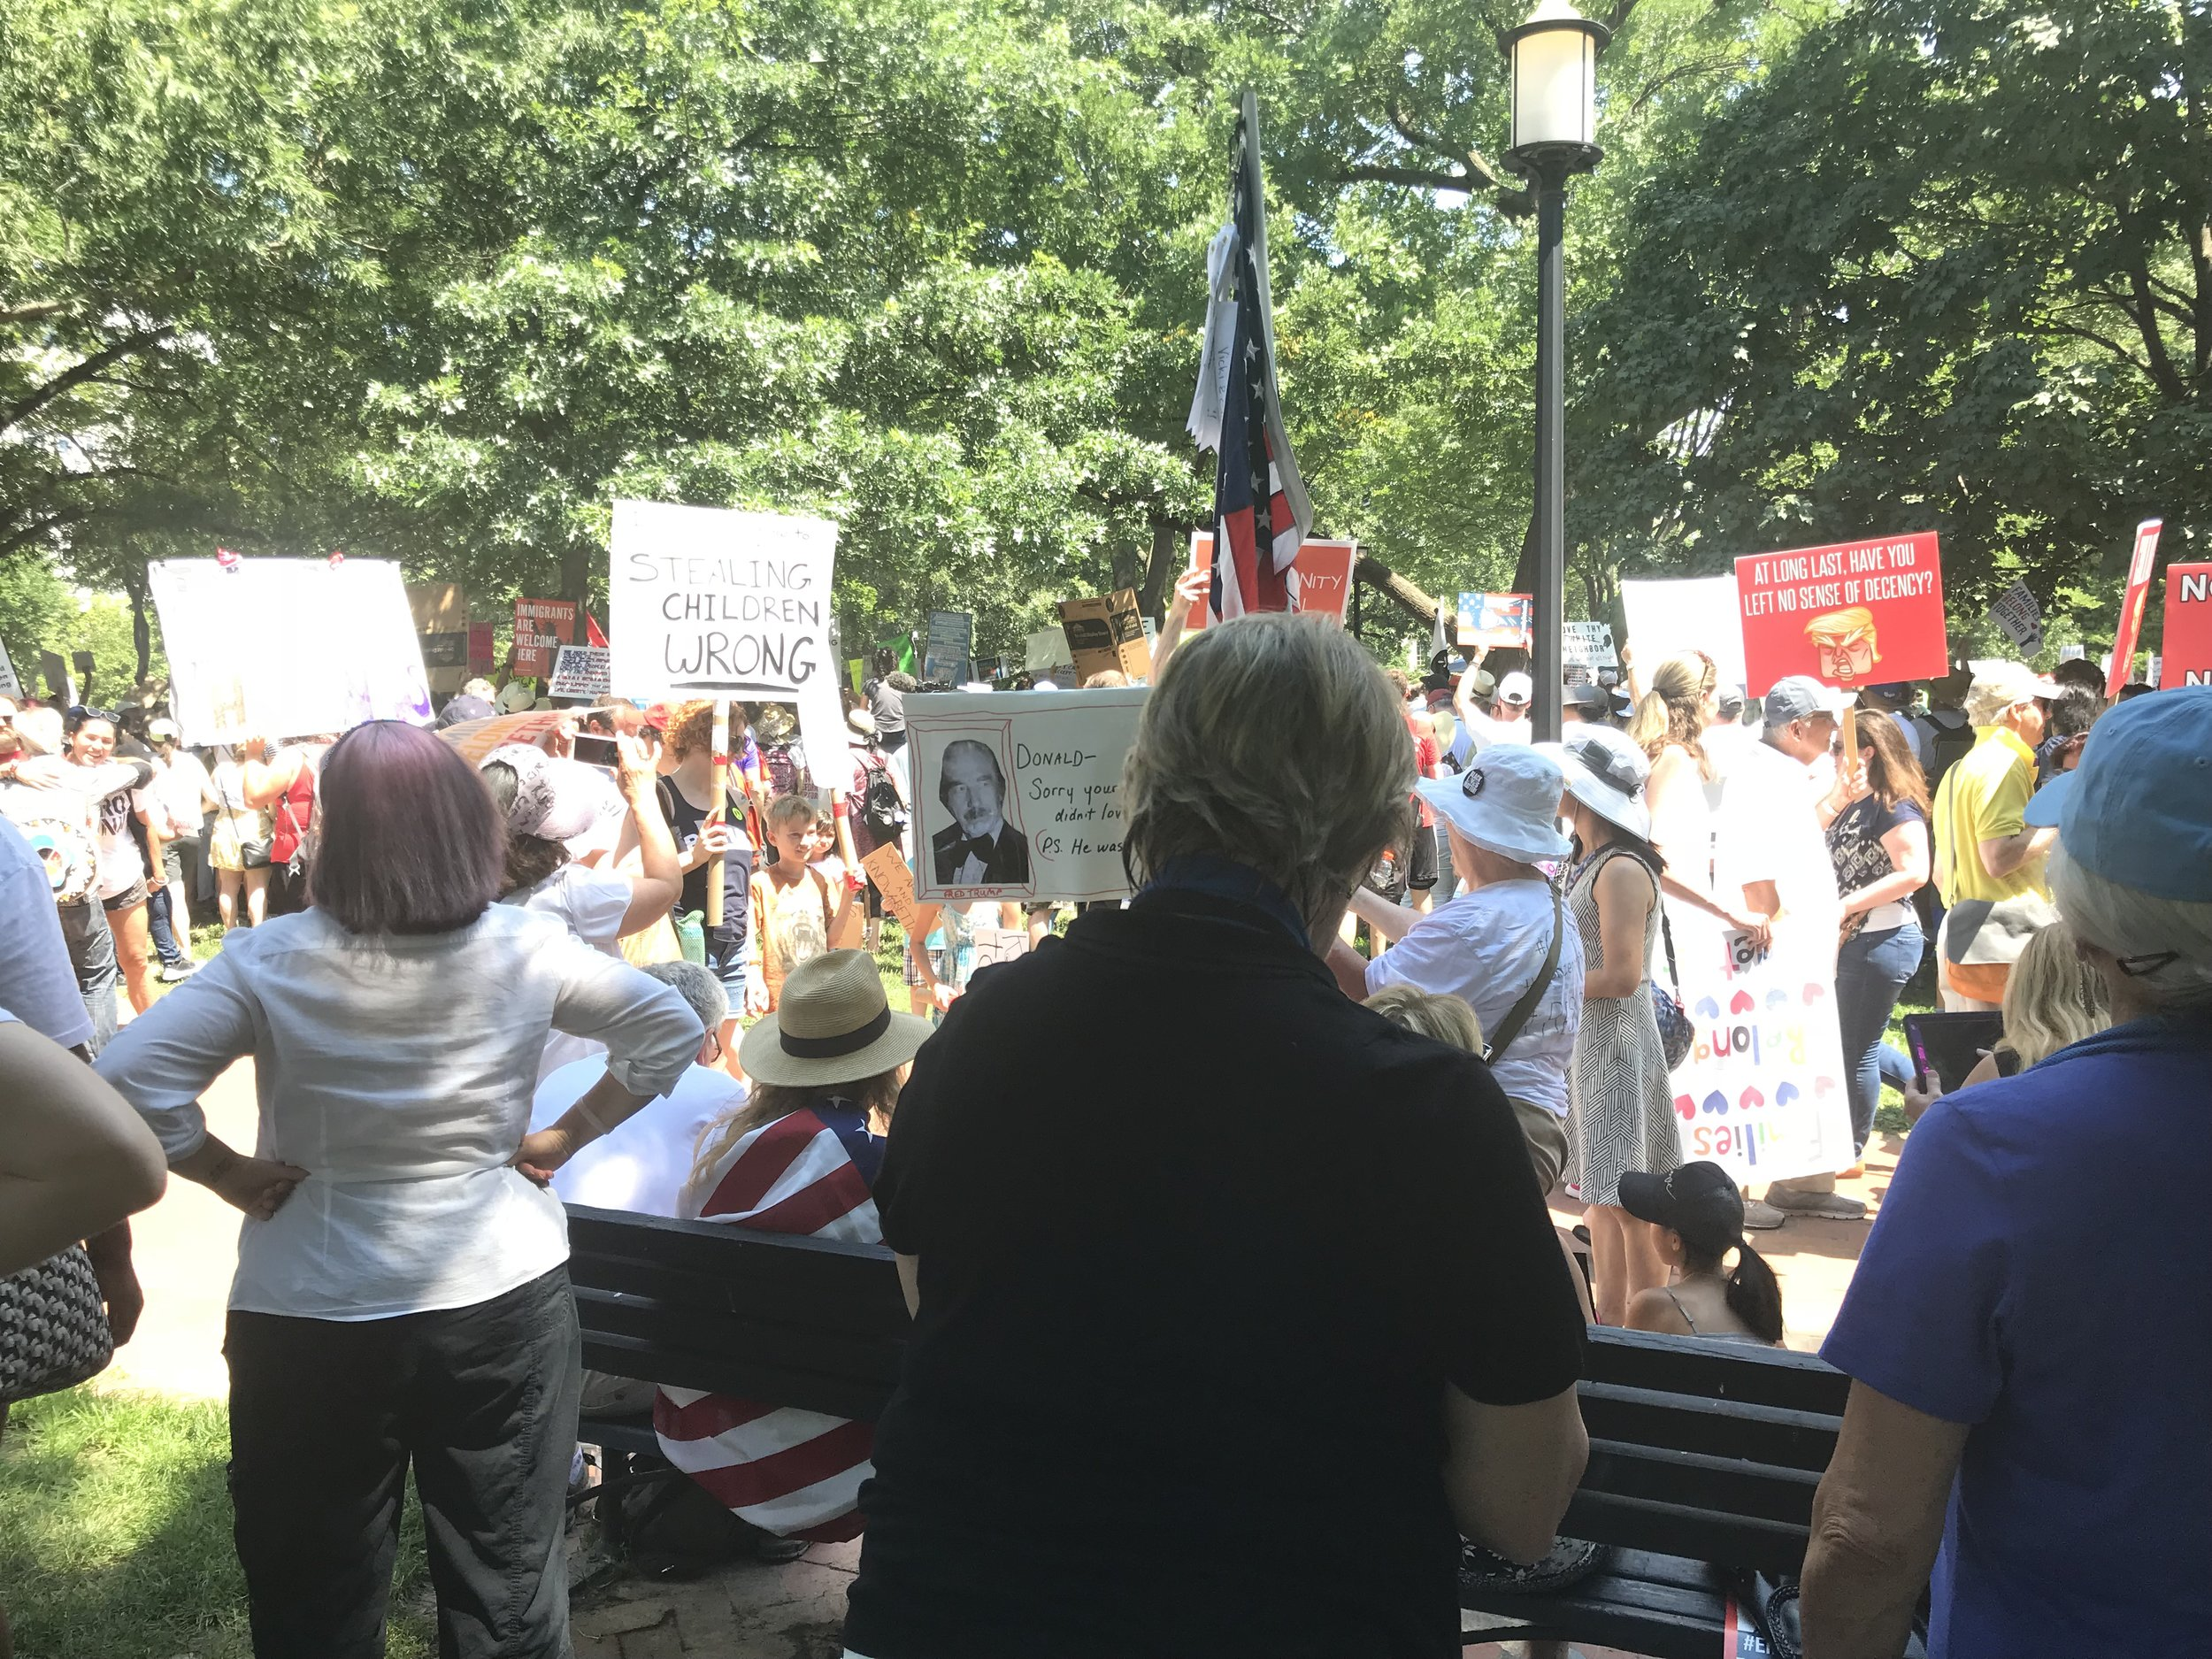 Immigration Rally (June 30, 2018)